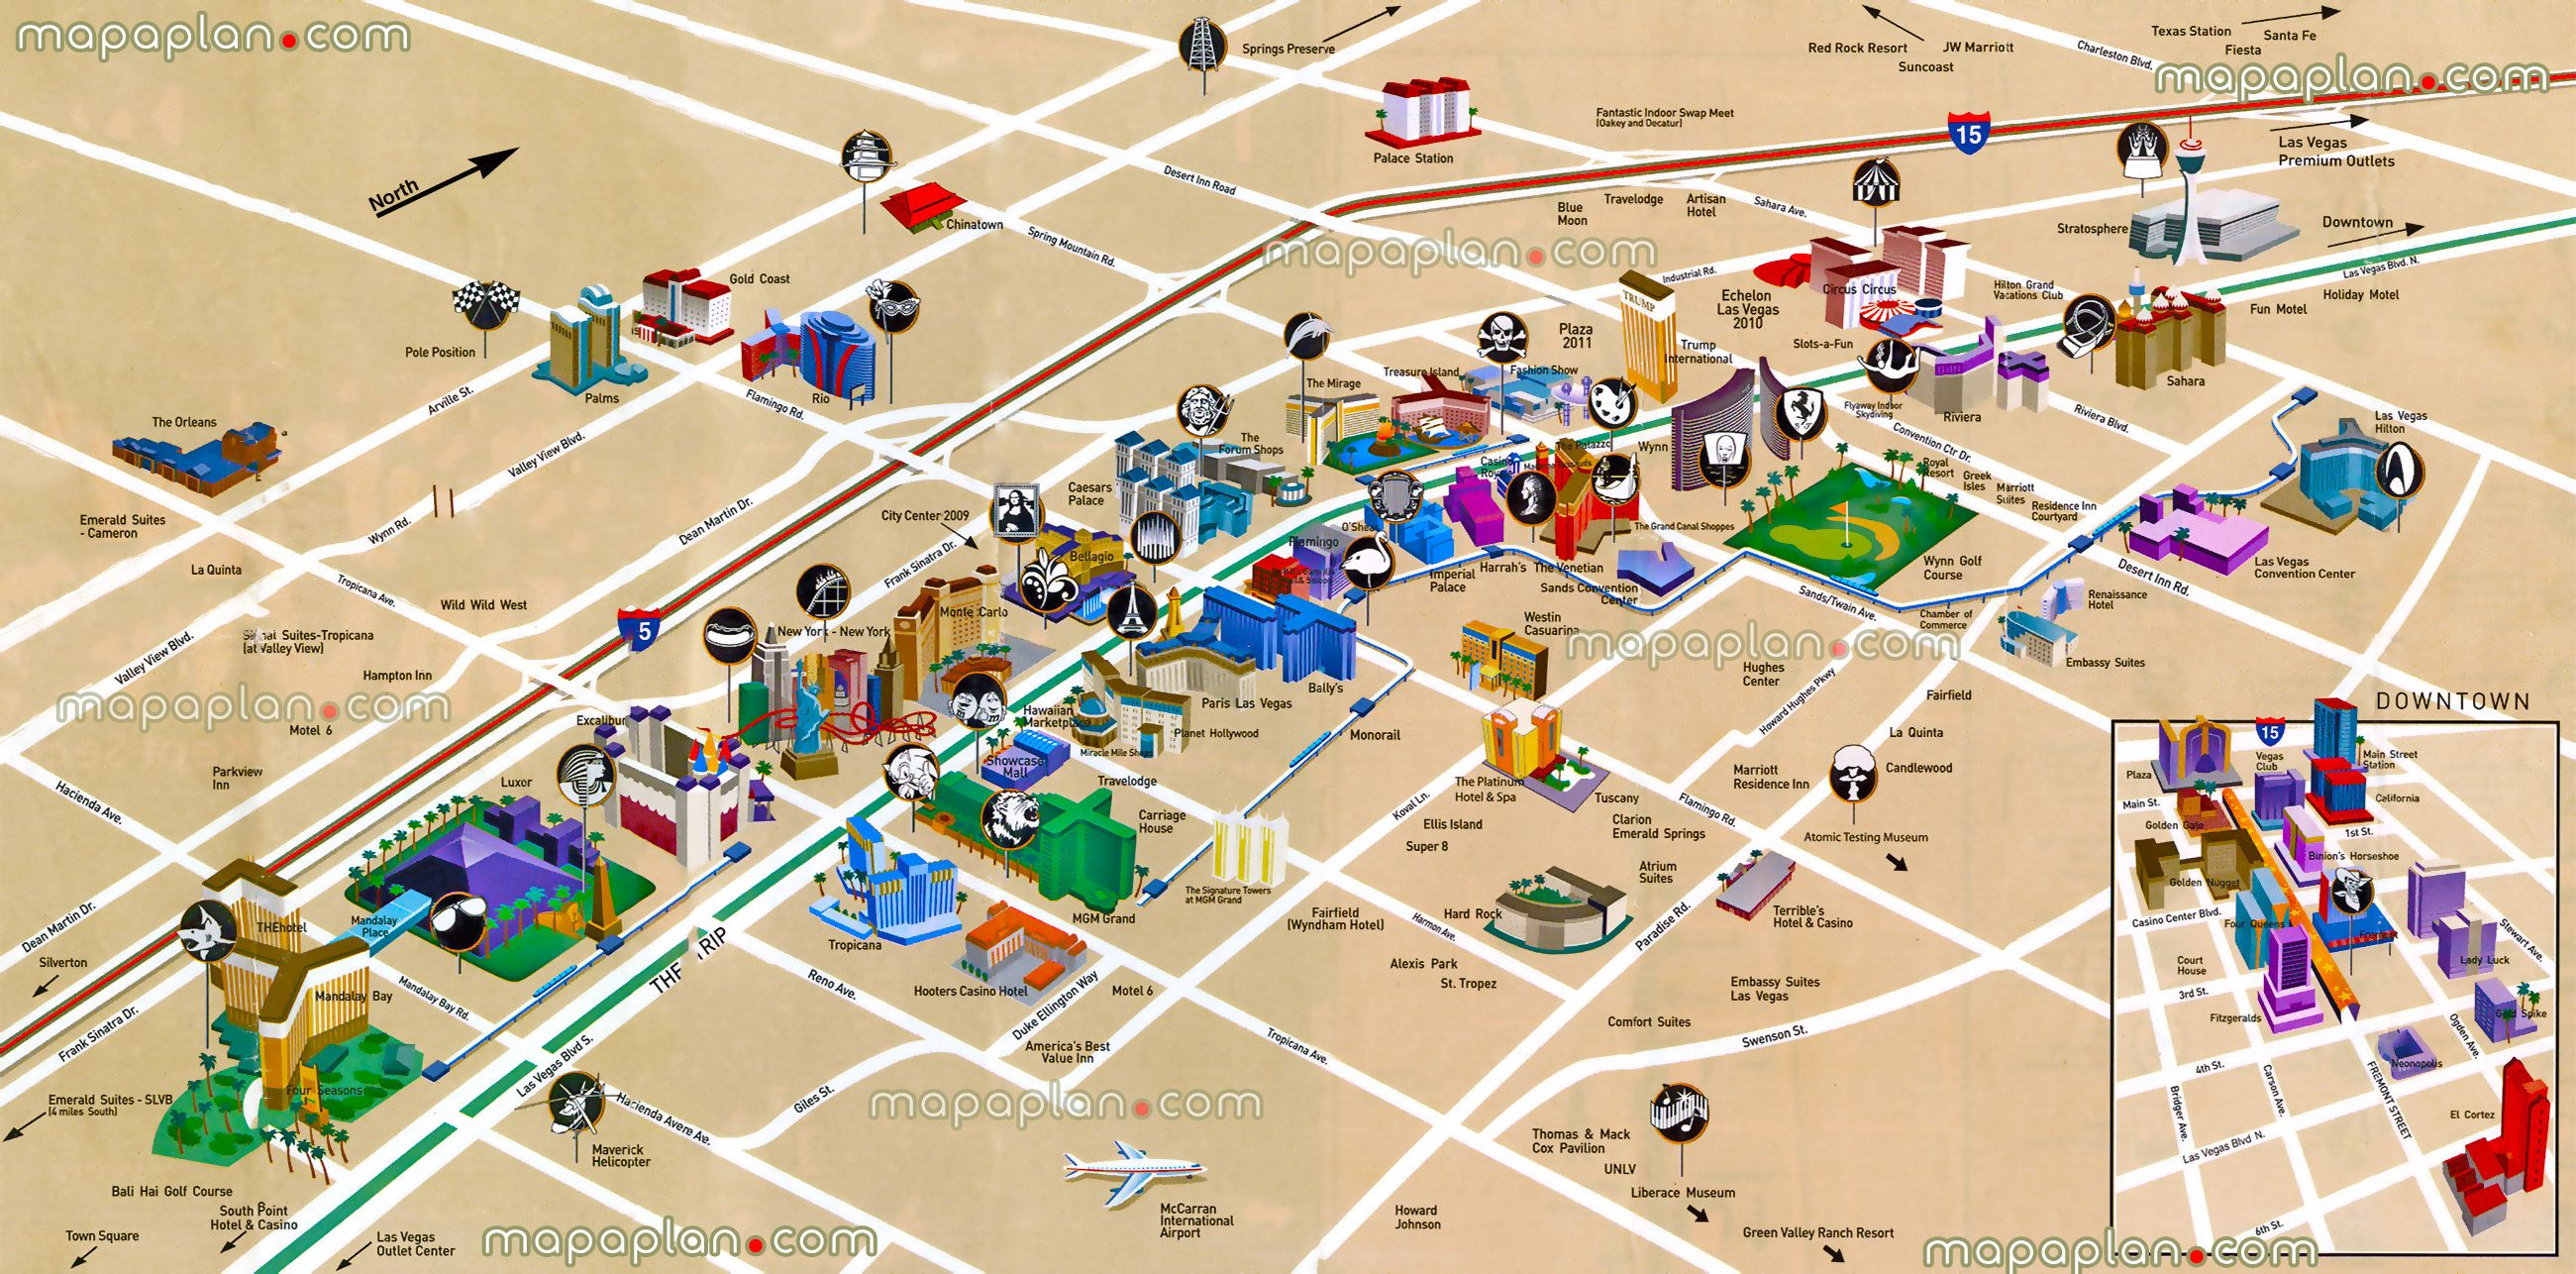 Strip Blvd Hotels Birds Eye D Buildings Aerial Satellite Virtual - Las vegas map of hotels